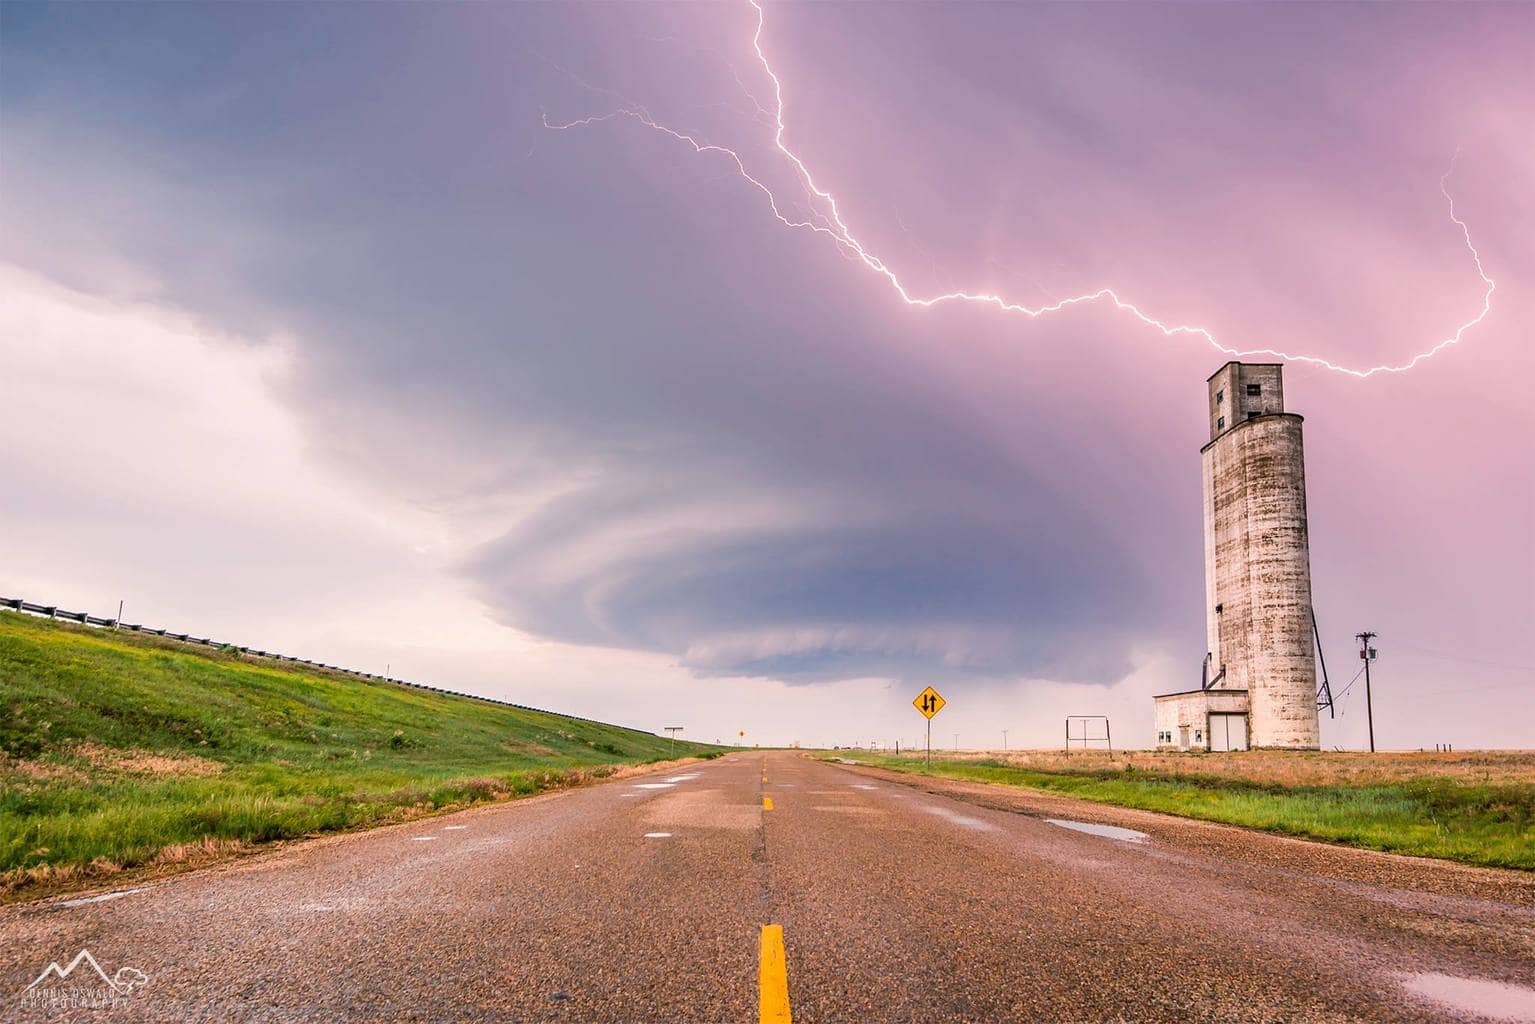 Vega,TX May 21st 2012. A mothership supercell is crossing I-40.  Lightning is frequent and the hail is not far away. This beauty moved very slow which allowed us to chase this storm in a relaxed way and we enjoyed it with only a few chasers out there.